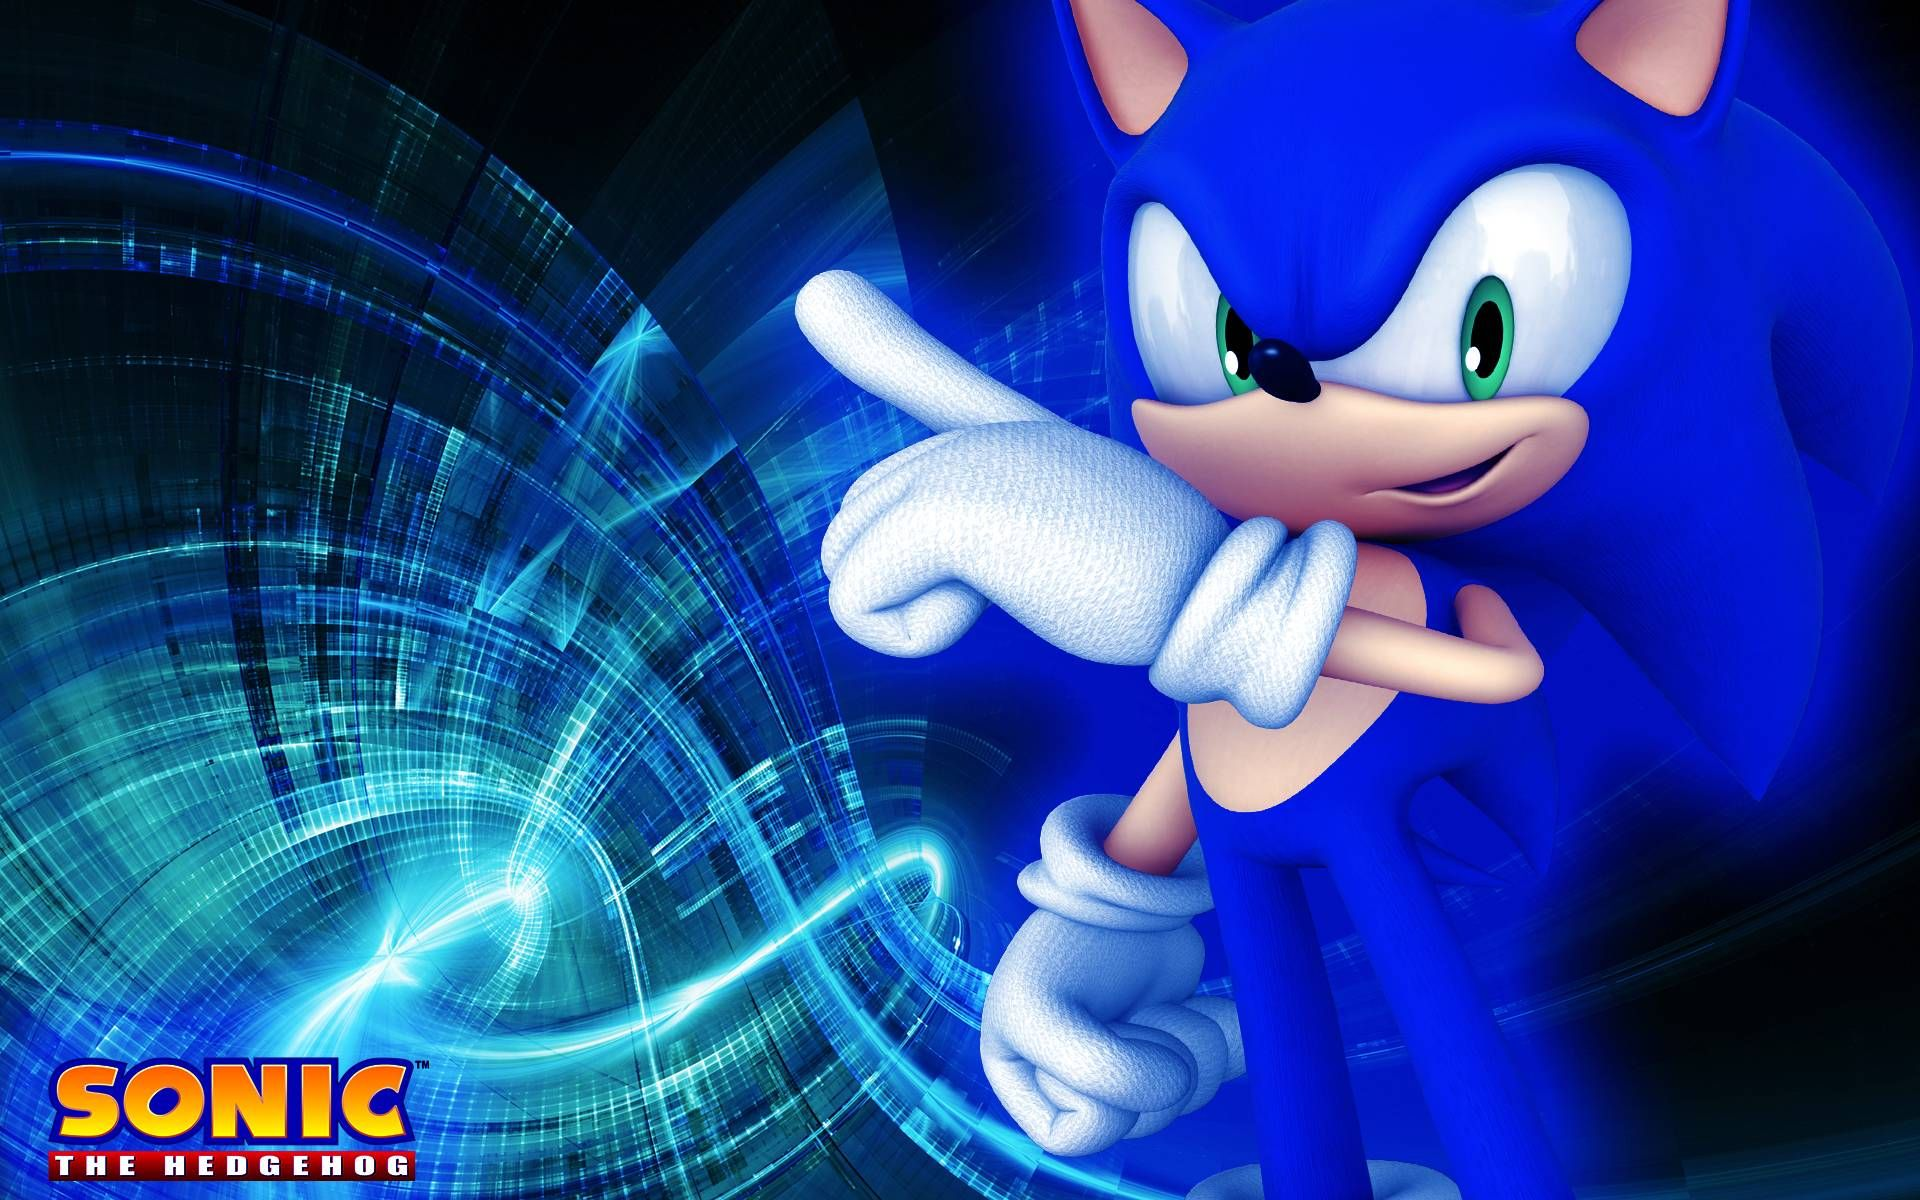 Sonic The Hedgehog Wallpapers Full Hd Wallpaper Search Sonic The Hedgehog 4 Sonic The Hedgehog Sonic